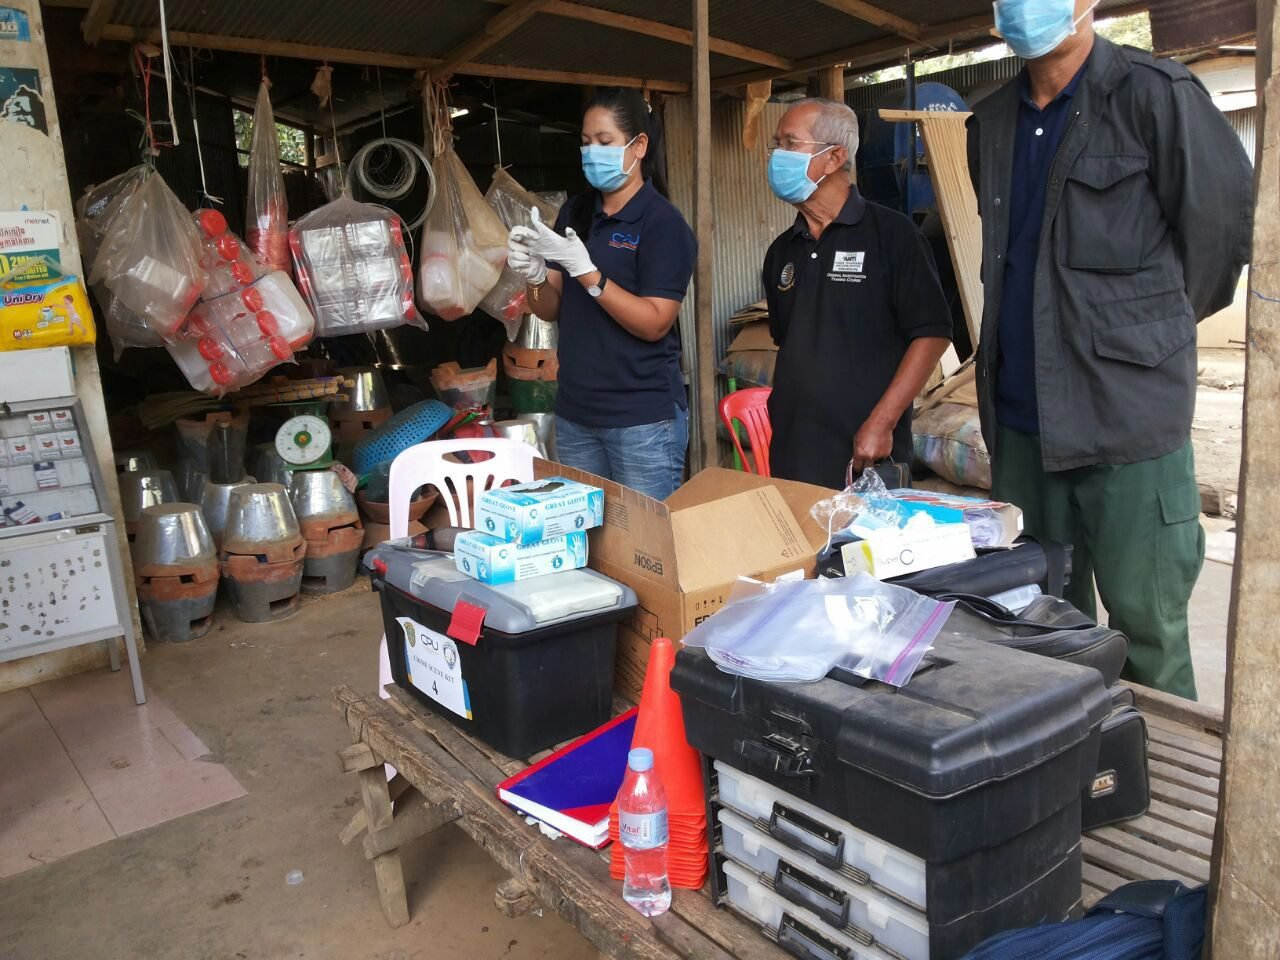 Cambodian officials prepare to inspect the perimeter of a nurse house after a local unlicensed doctor was charged with spreading HIV, in Roka commune in Battambang province, Cambodia, on Dec. 17, 2014.